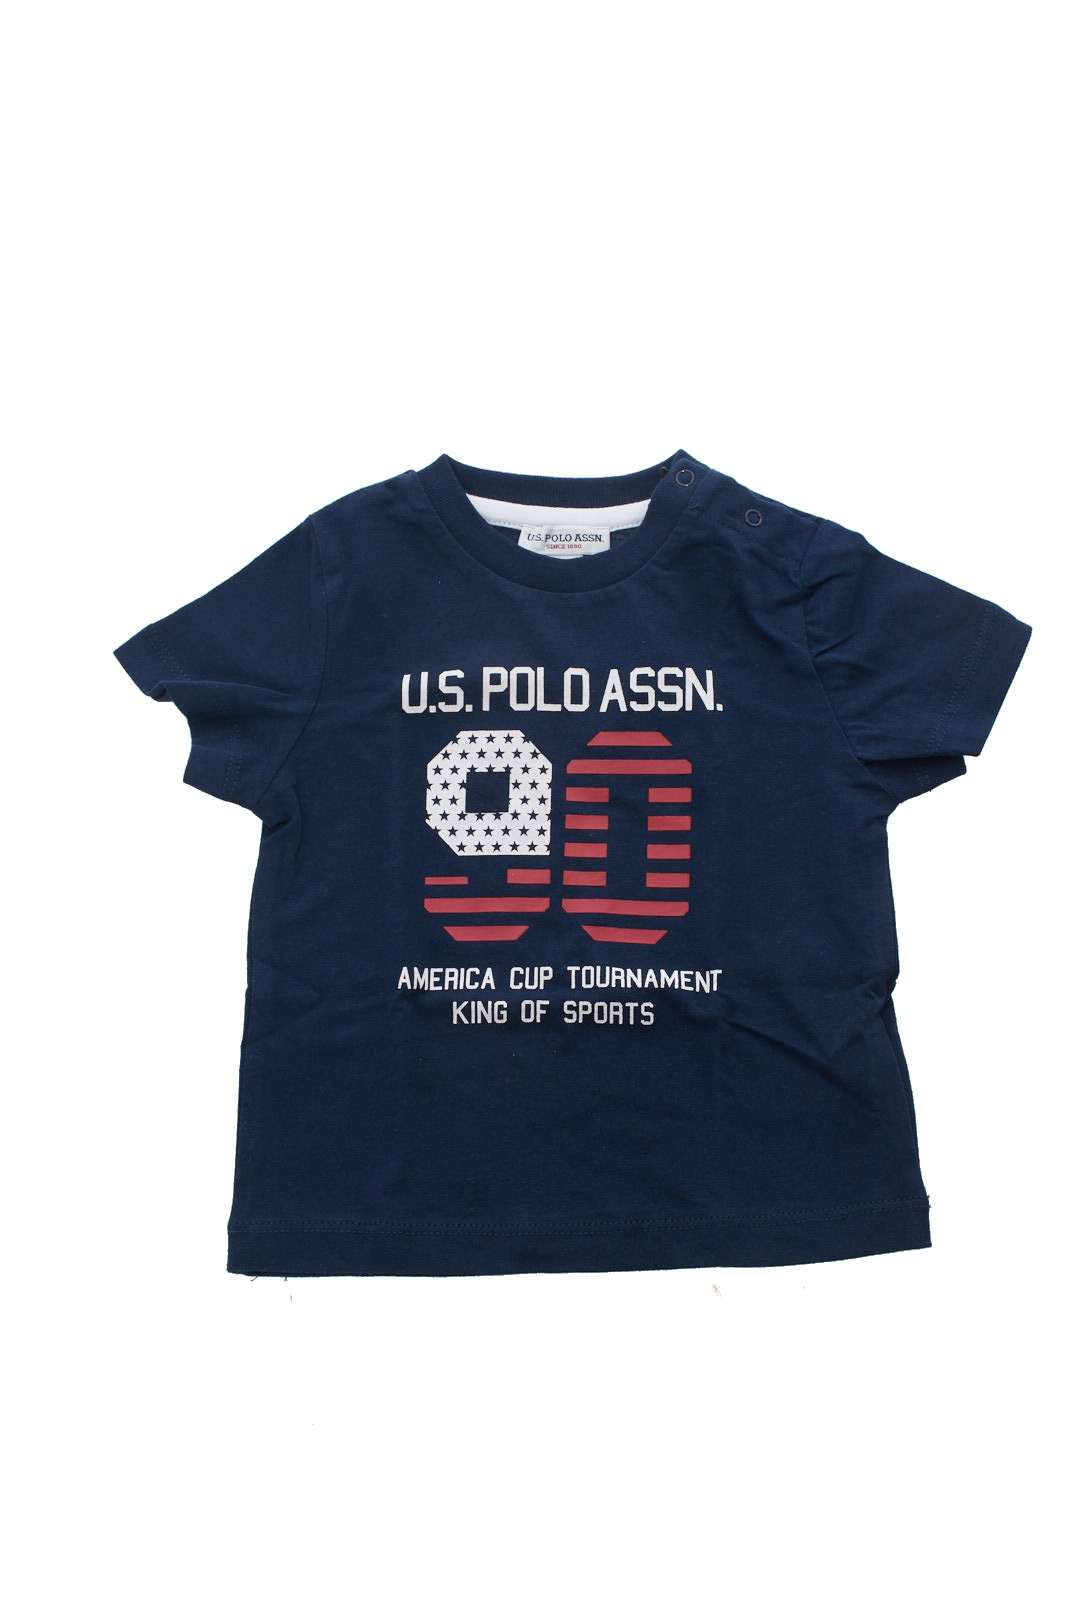 https://www.parmax.com/media/catalog/product/a/i/PE-outlet_parmax-t-shirt-bambino-Us-Polo-33029-A.jpg